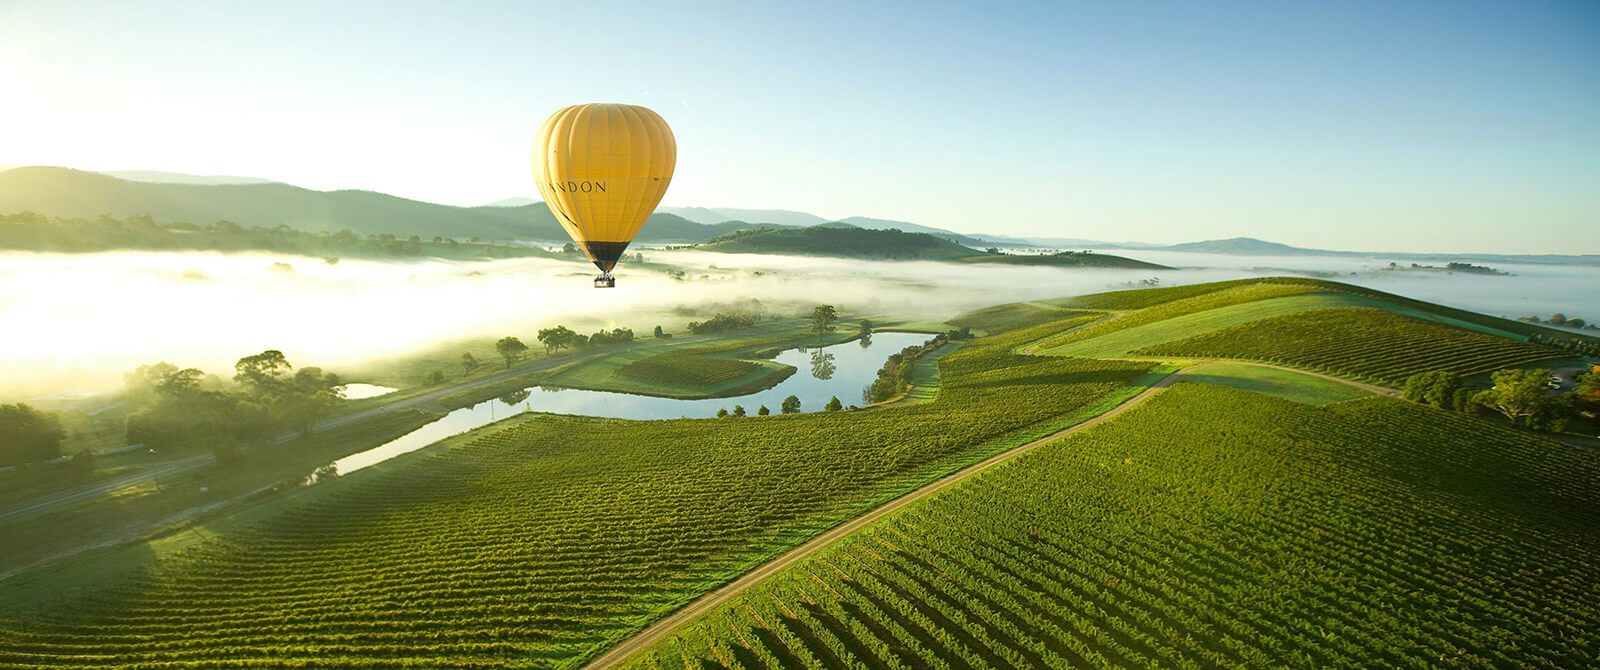 Hot Air Balloon Over Yarra Valley Wine Region - Book Your Australia Vacation - Australia Travel Agency